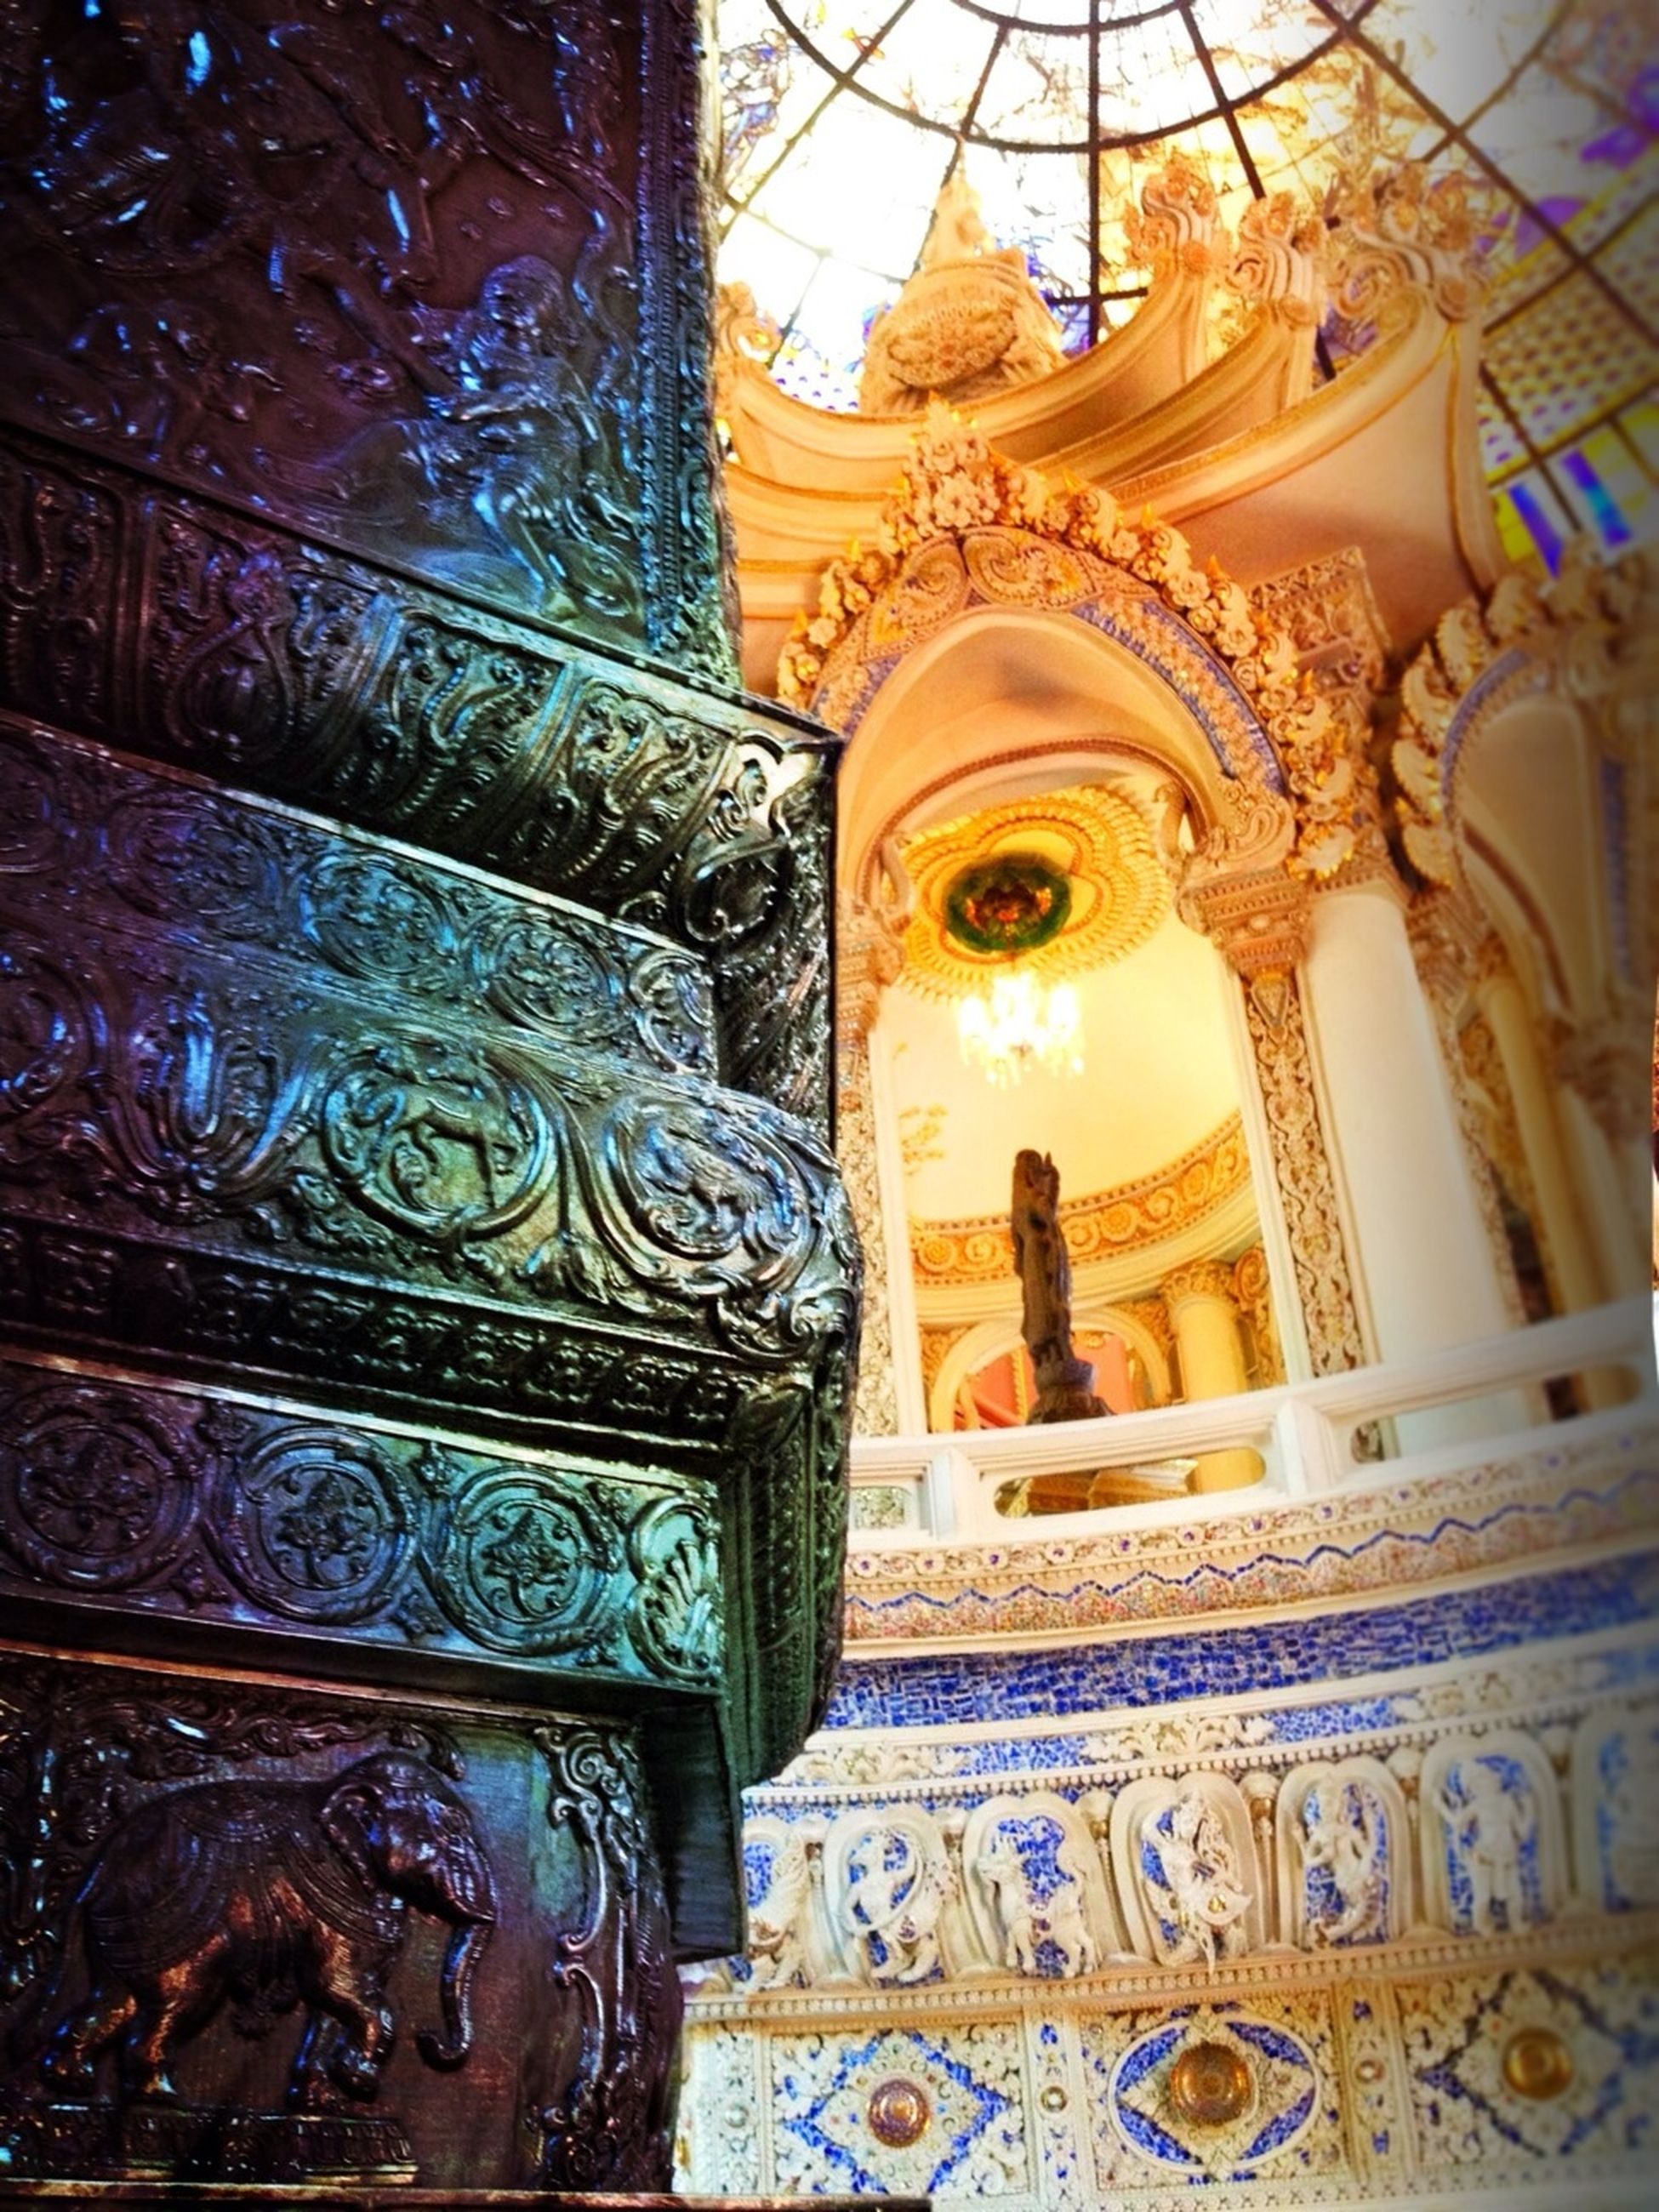 art and craft, art, creativity, human representation, statue, religion, sculpture, carving - craft product, ornate, place of worship, architecture, spirituality, built structure, famous place, gold colored, design, travel destinations, low angle view, building exterior